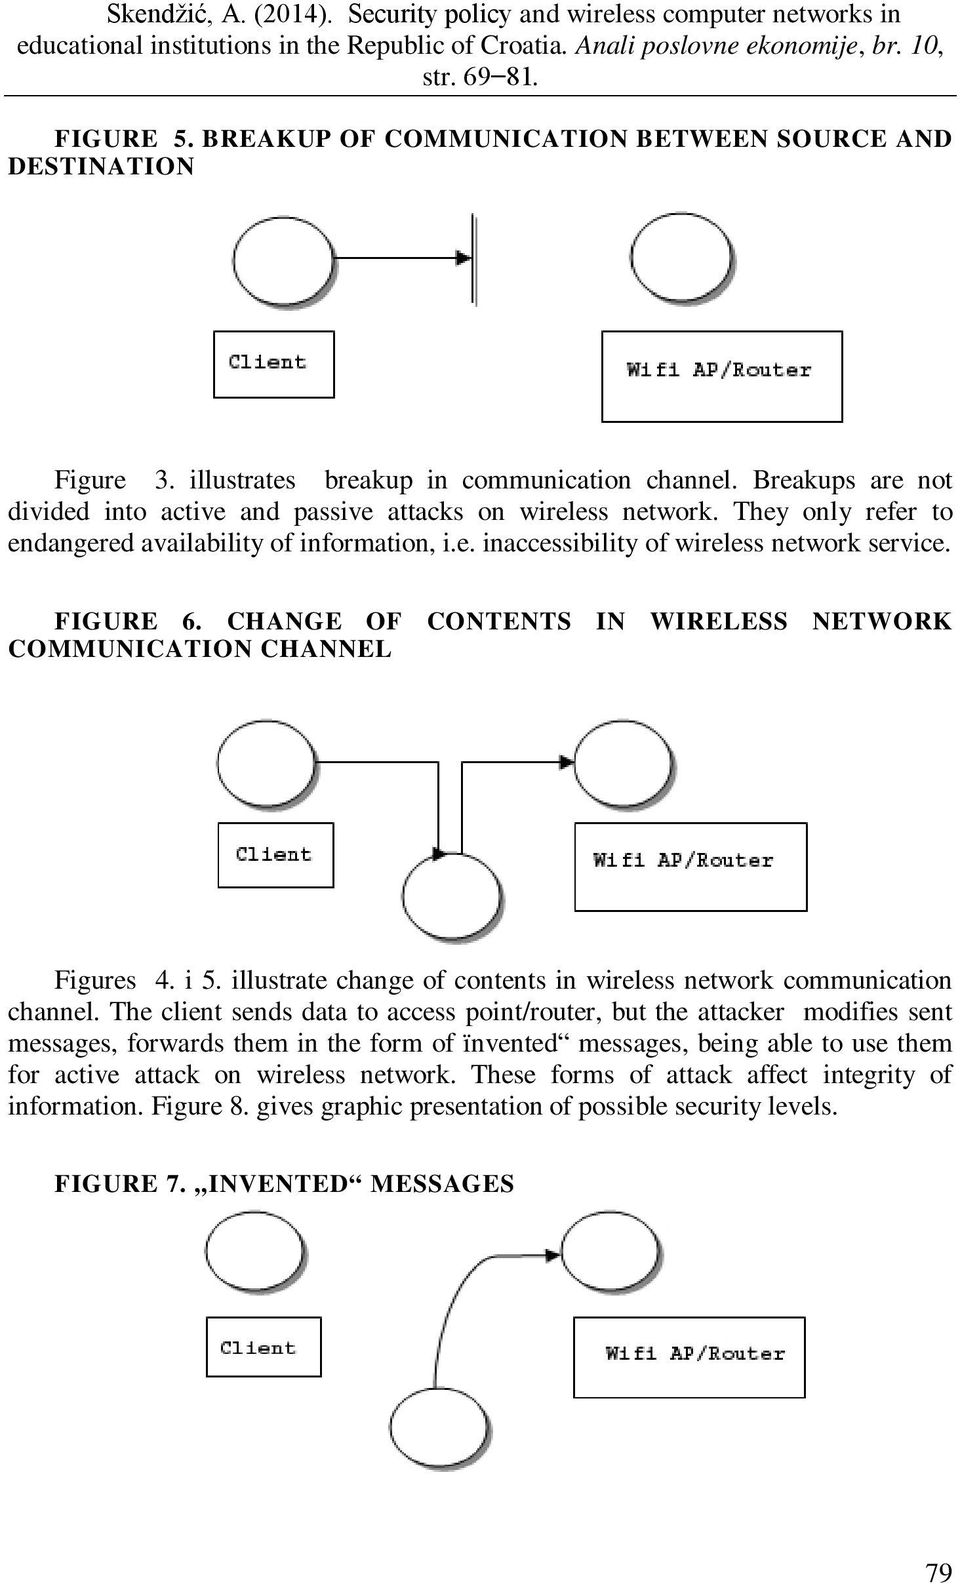 illustrate change of contents in wireless network communication channel.